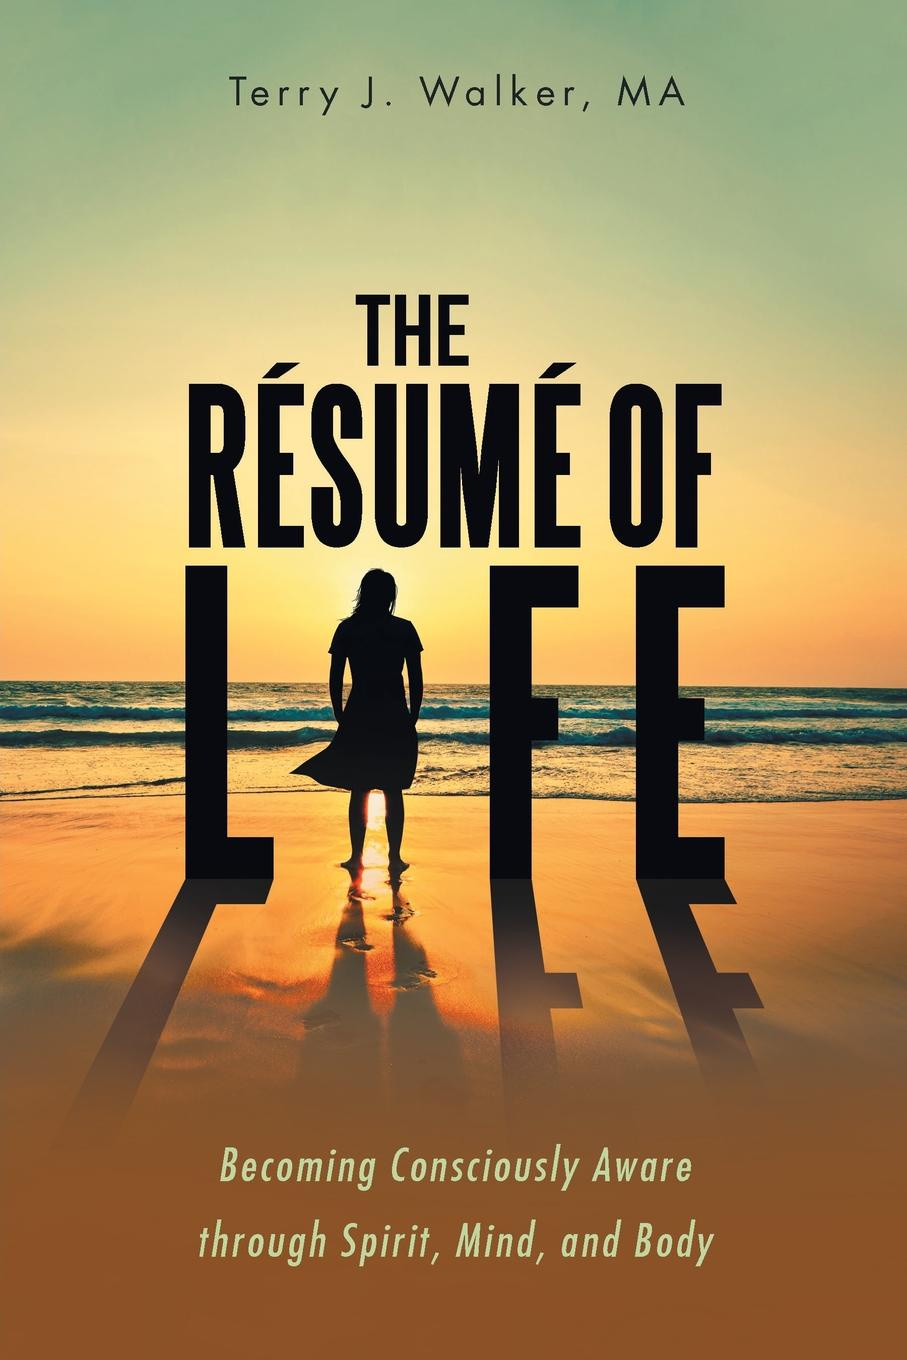 MA Terry J. Walker The Resume of Life. Becoming Consciously Aware through Spirit, Mind, and Body kevin r foley iwawo discovering and loving your life journey